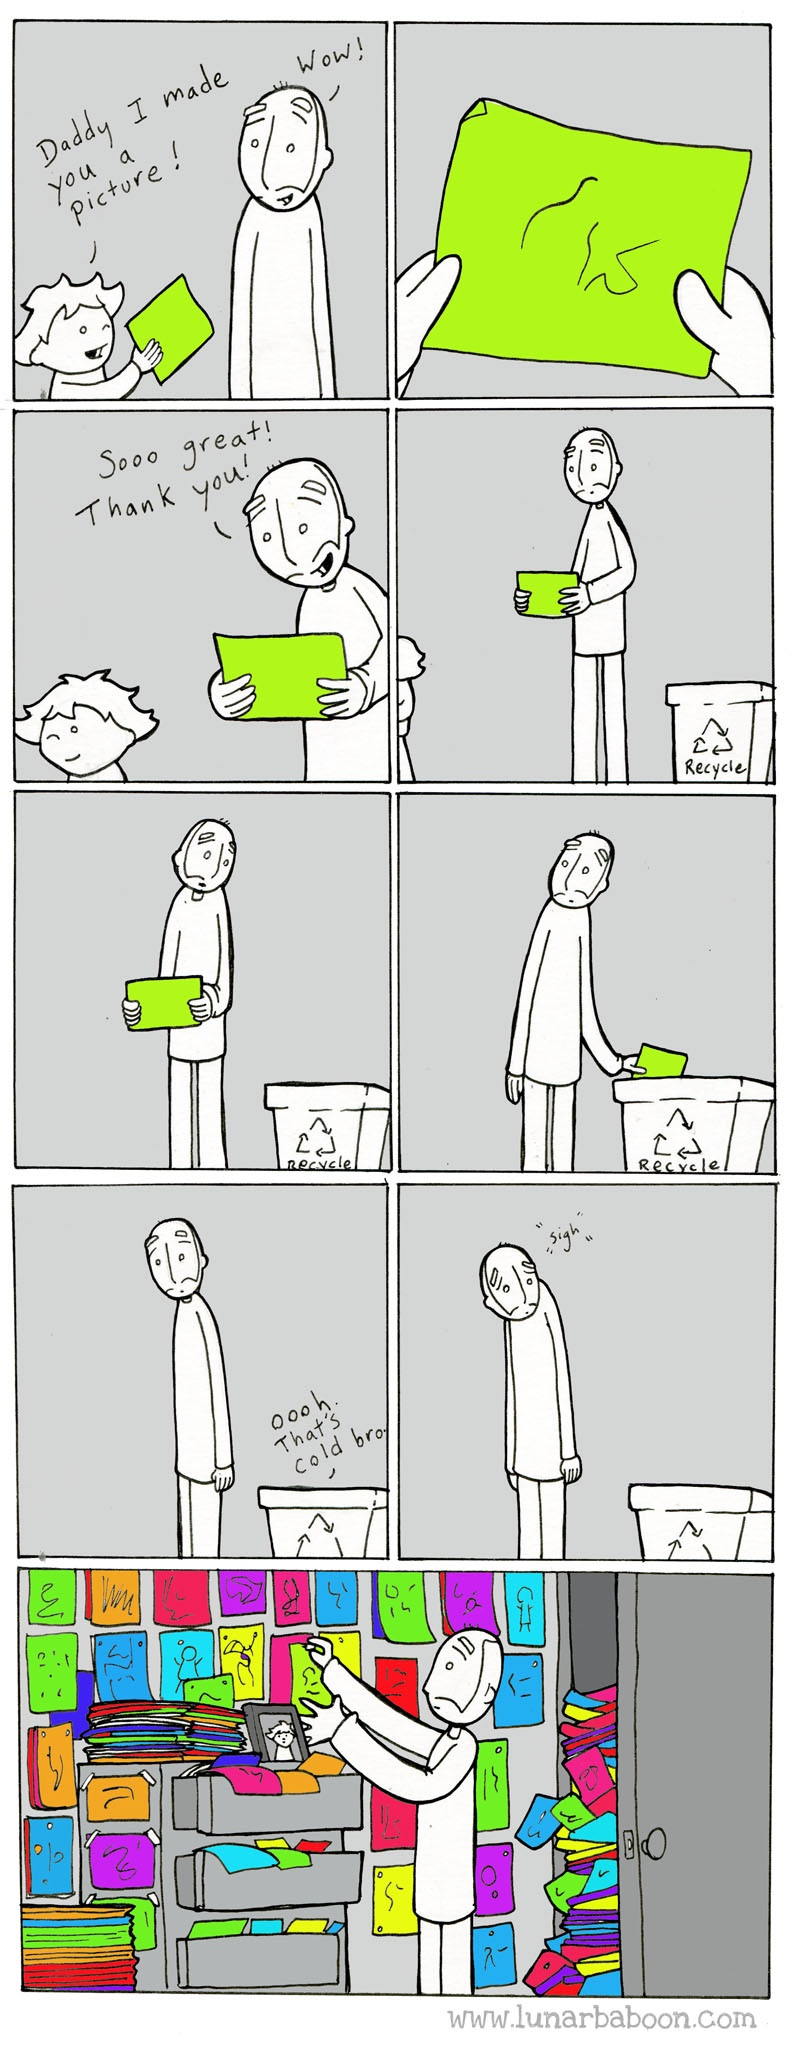 fun ny-picture-comics-lunarbaboon-sandbox-dad